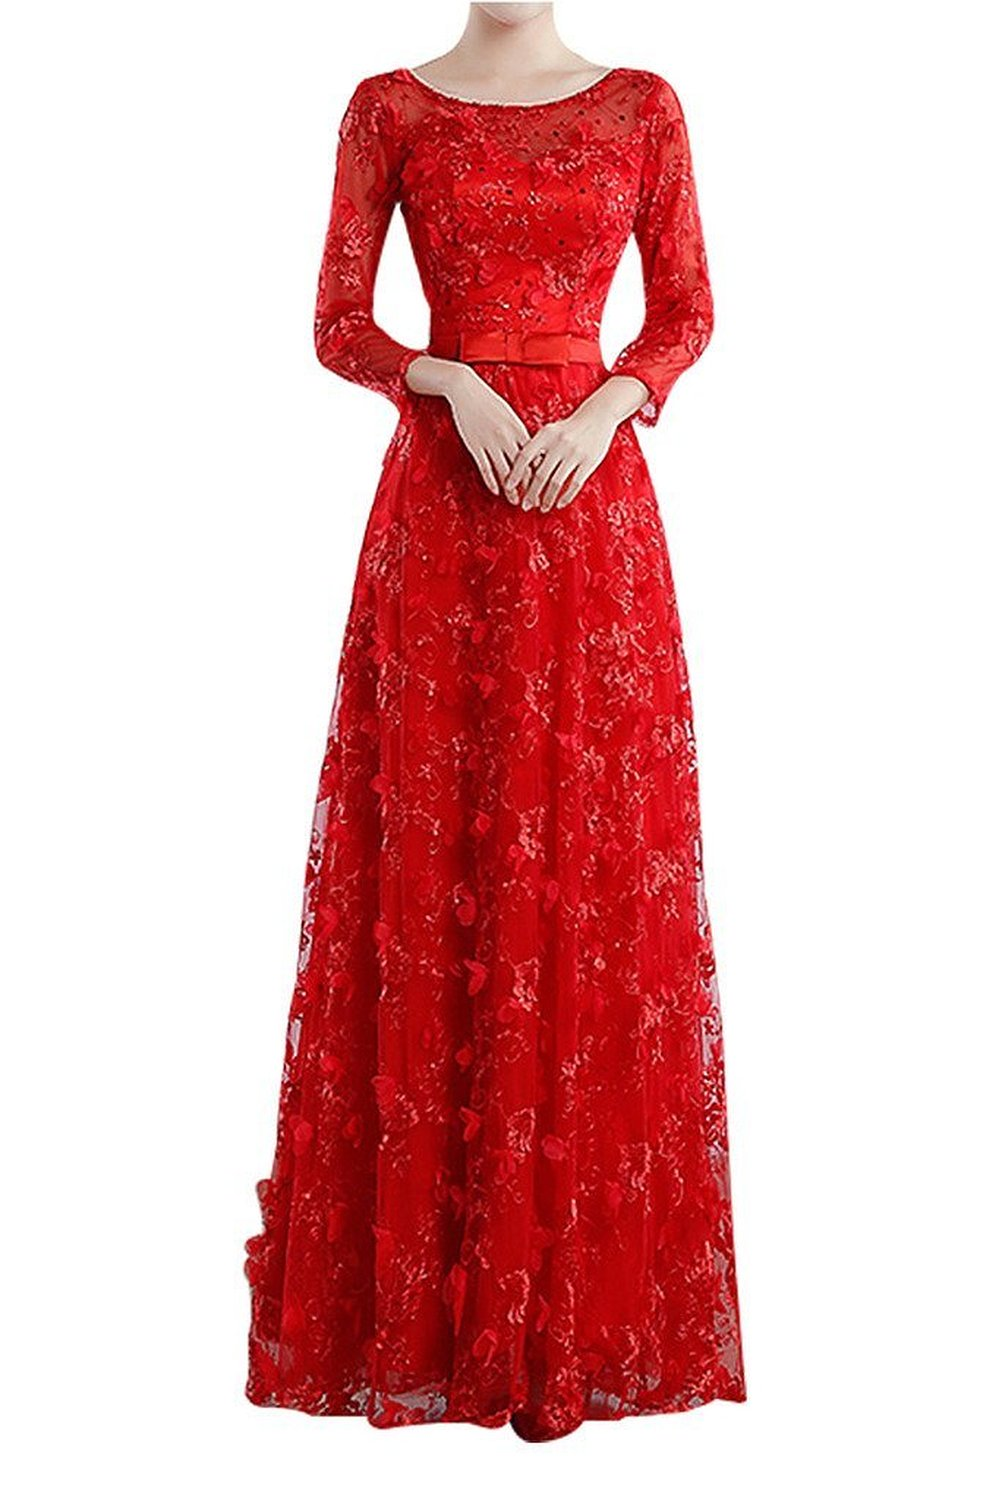 red bridal evening dress